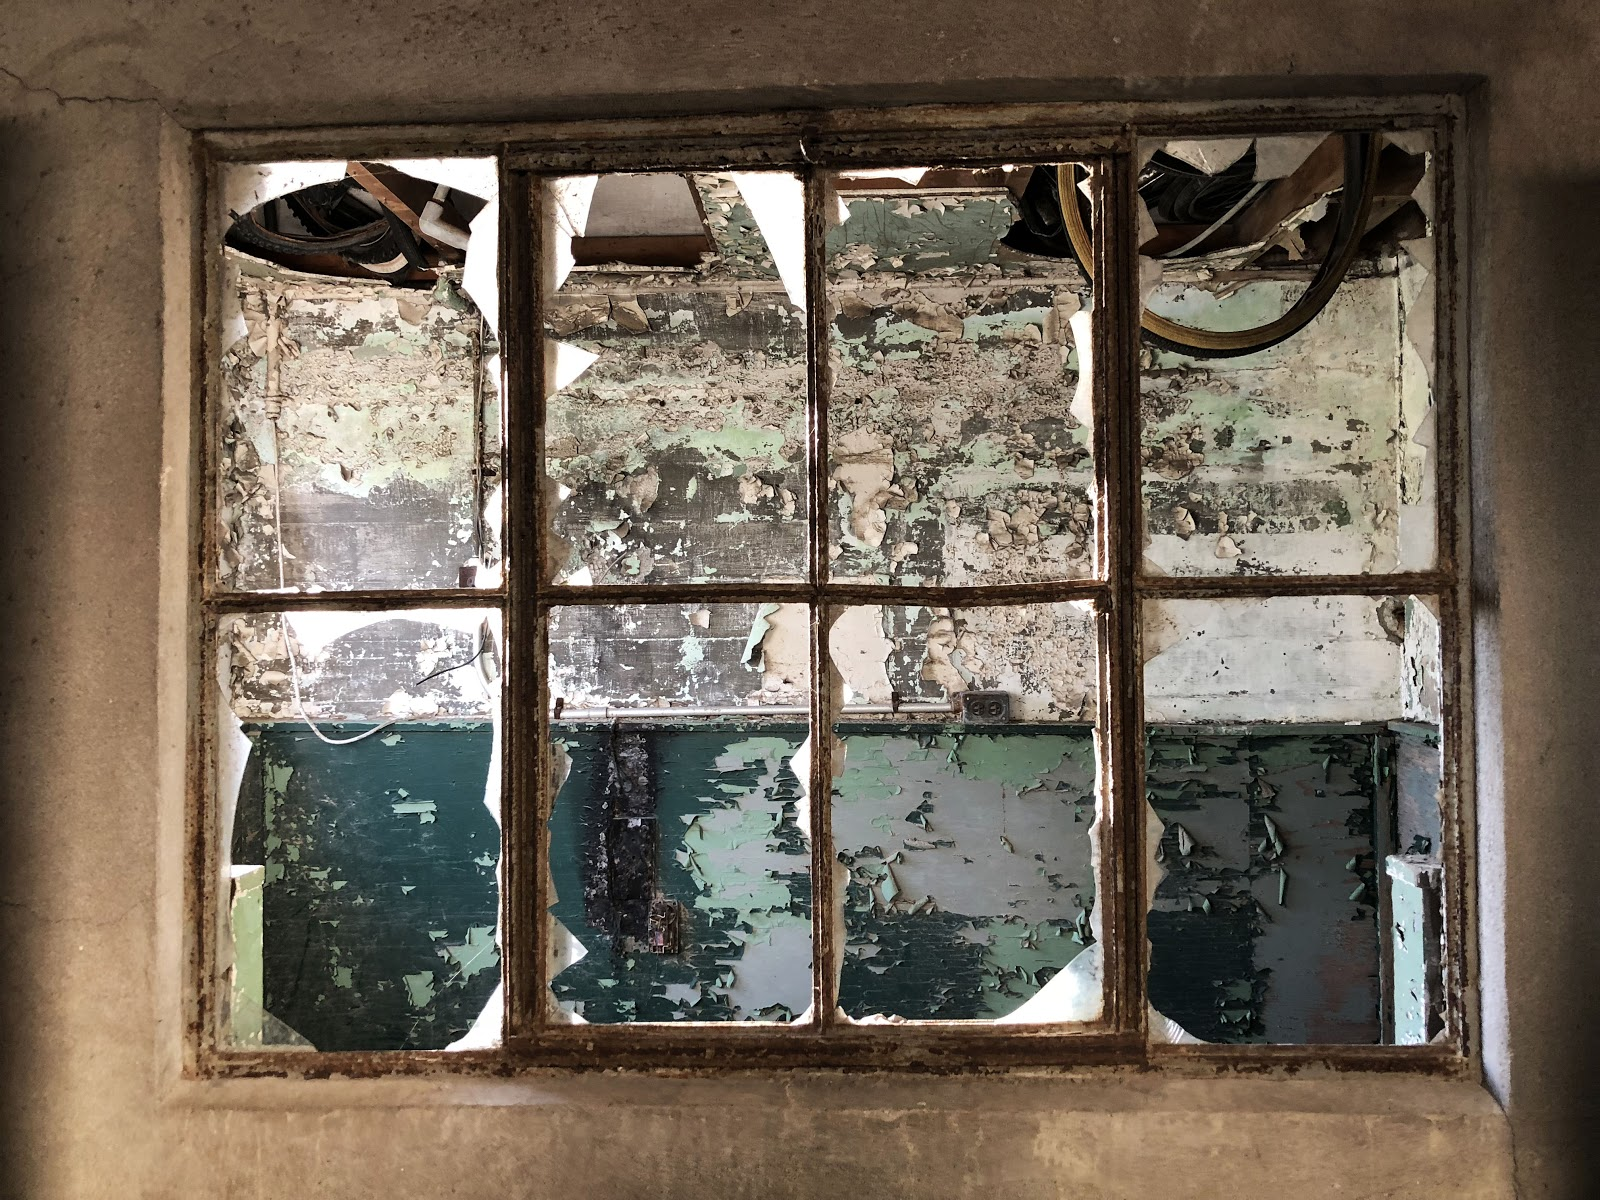 window with broken glass